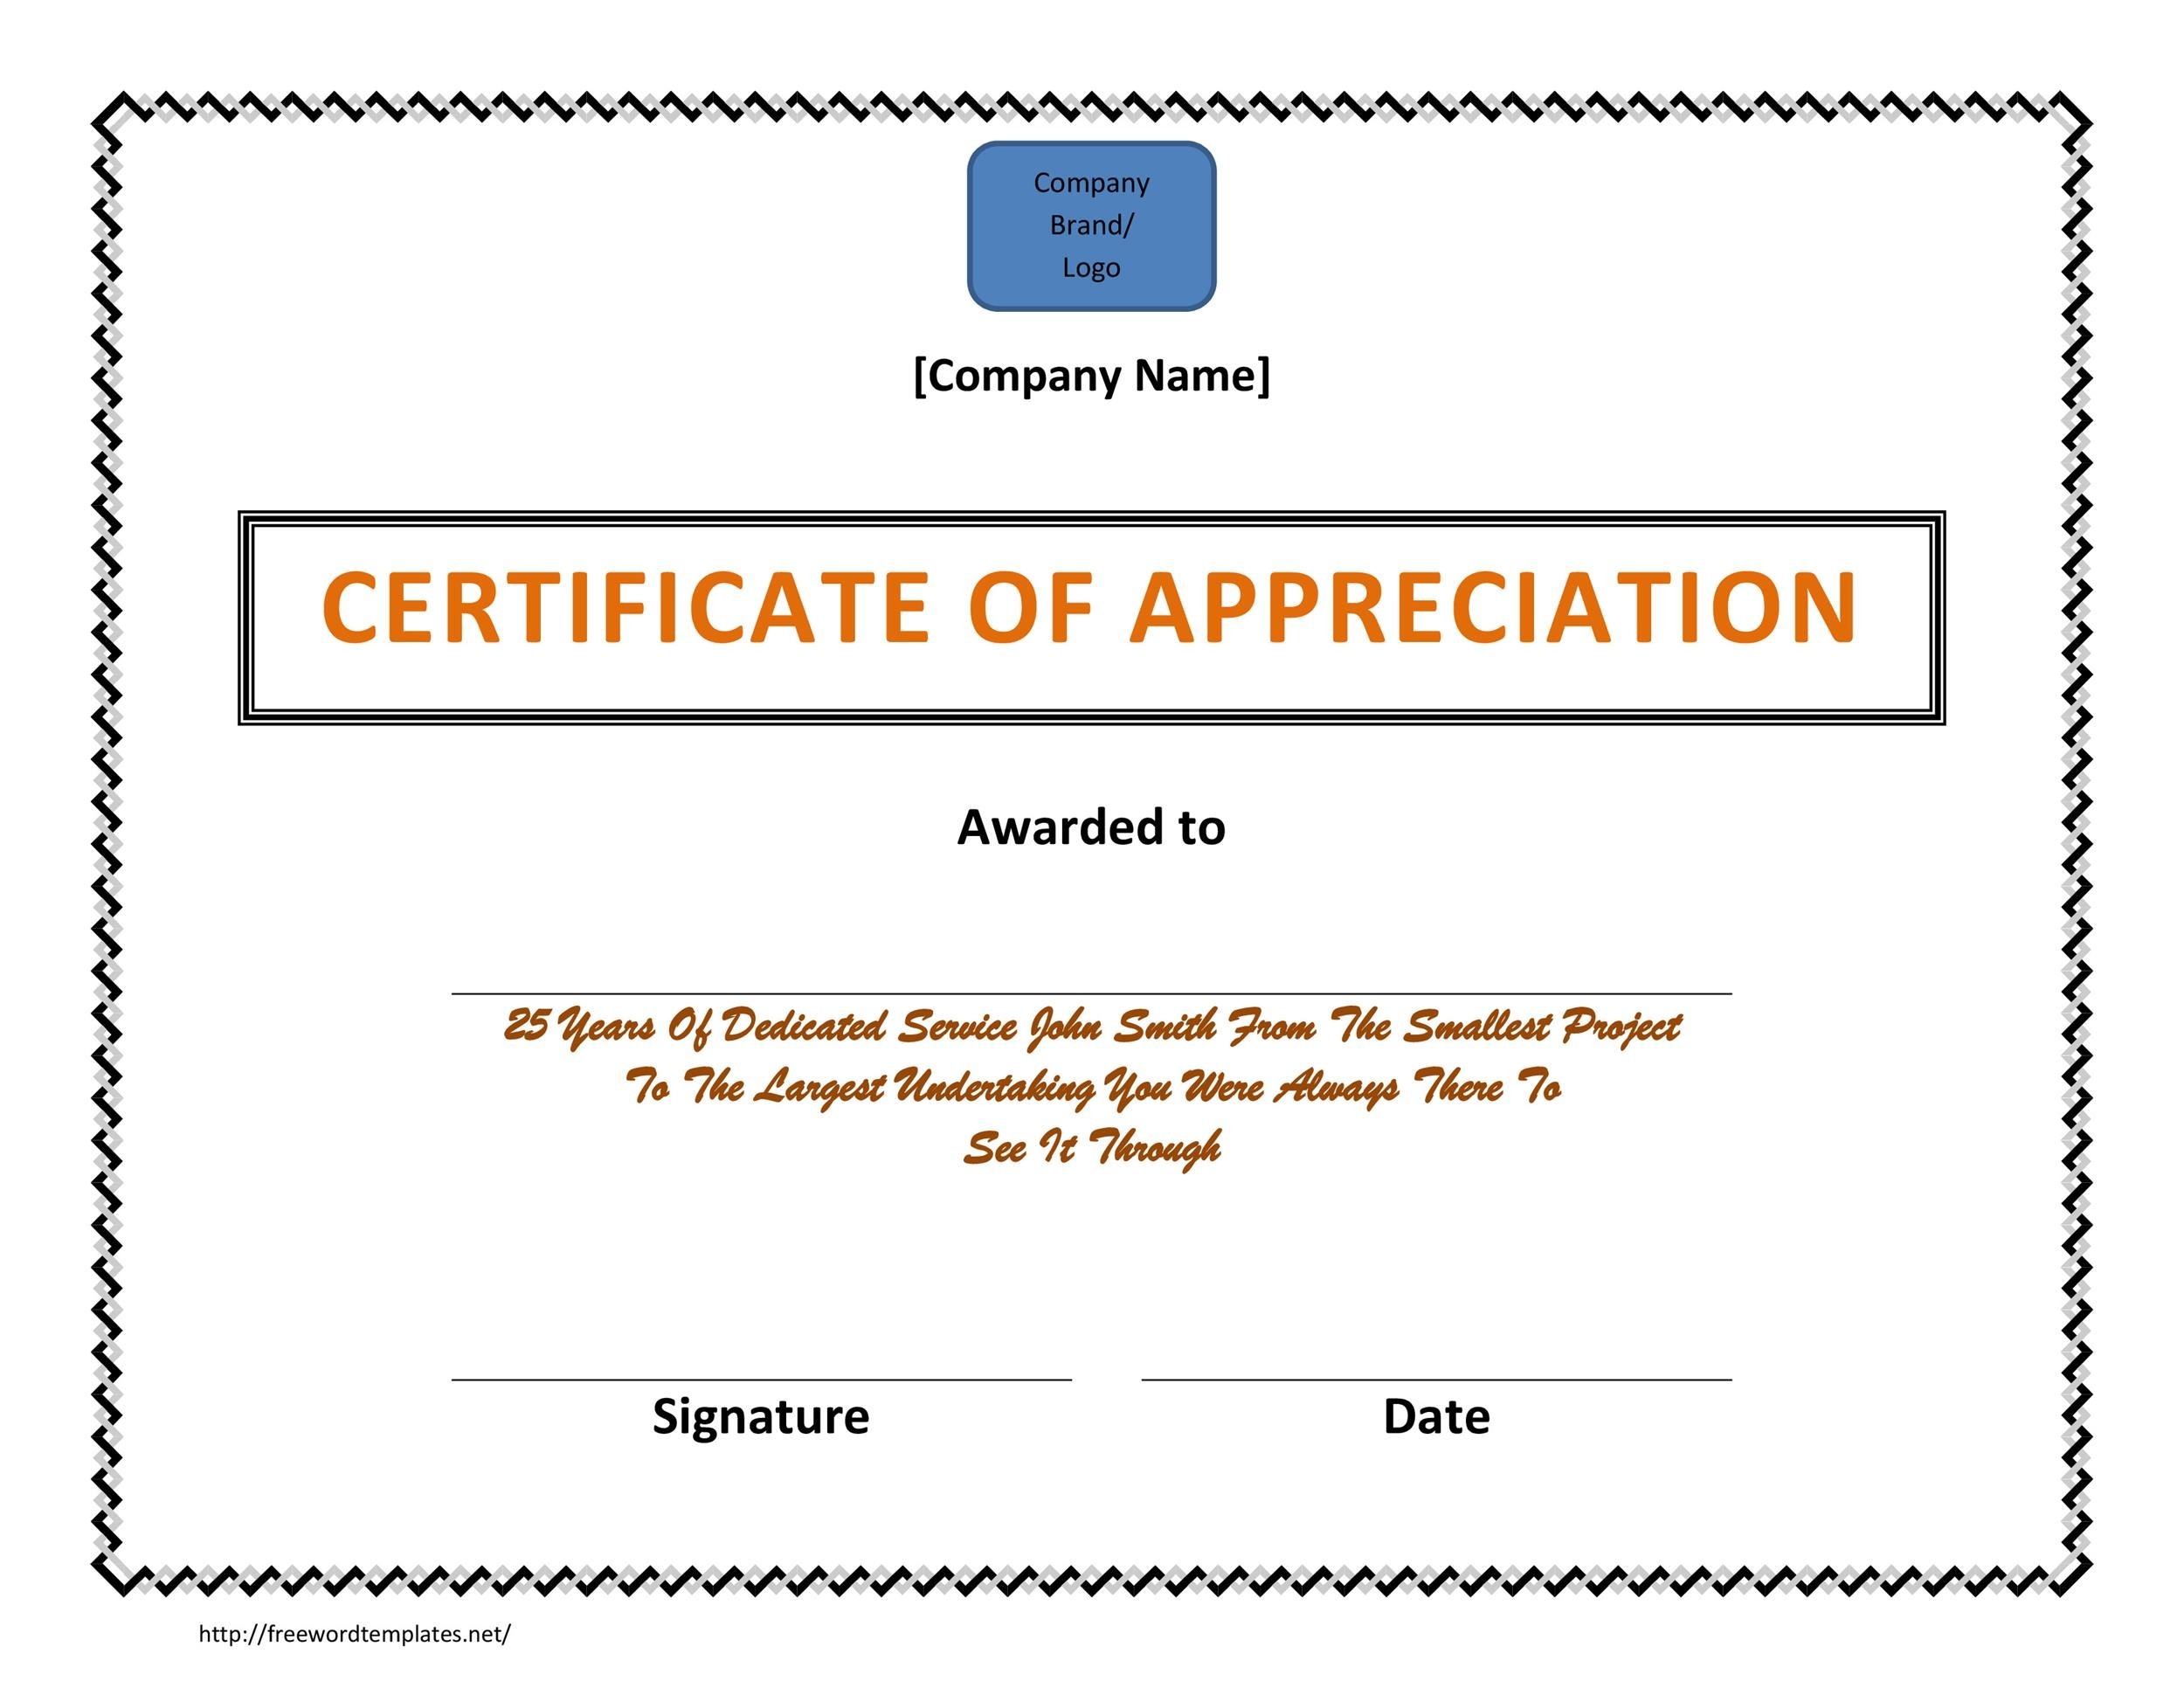 Free certificate of appreciation templates and letters printable certificate of appreciation 05 yadclub